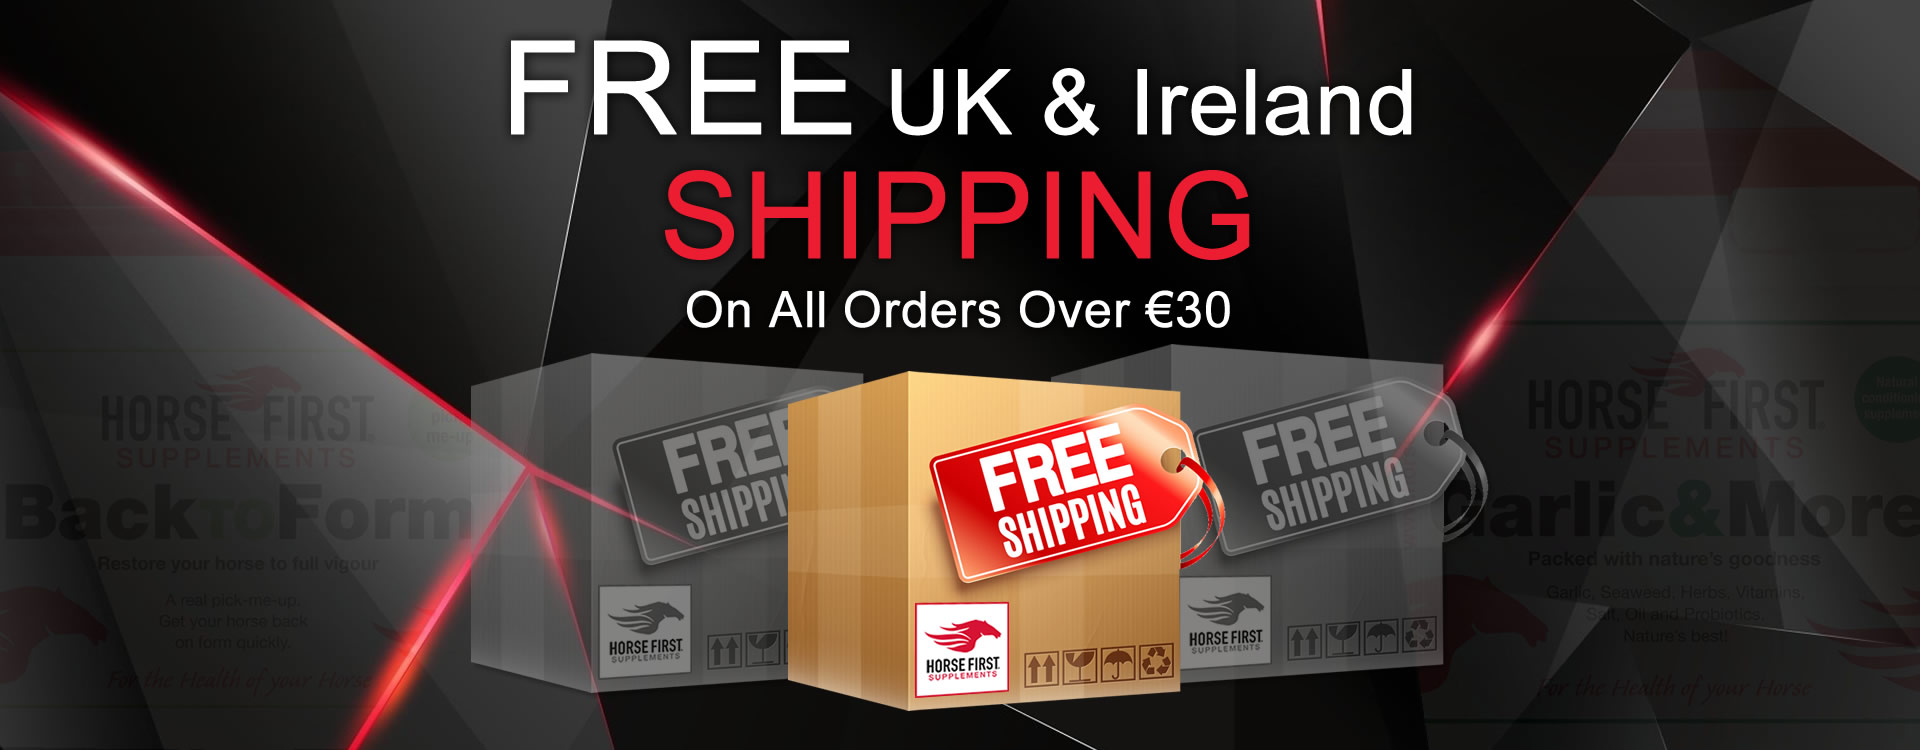 FREE UK and Ireland Delivery!